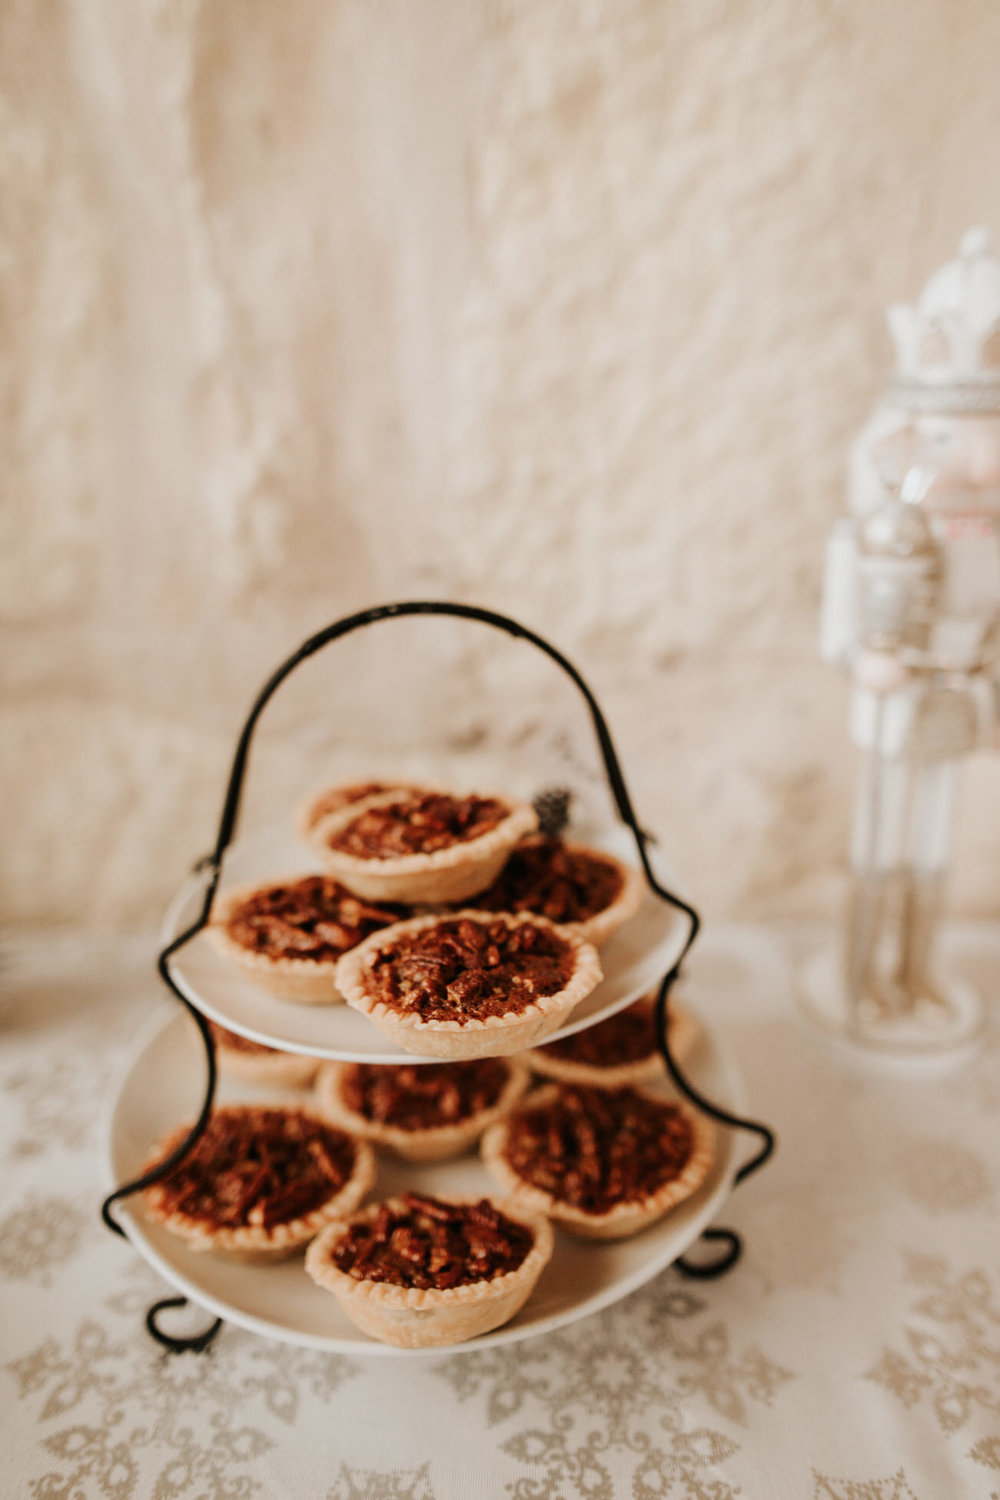 Mini pies at wedding dessert table